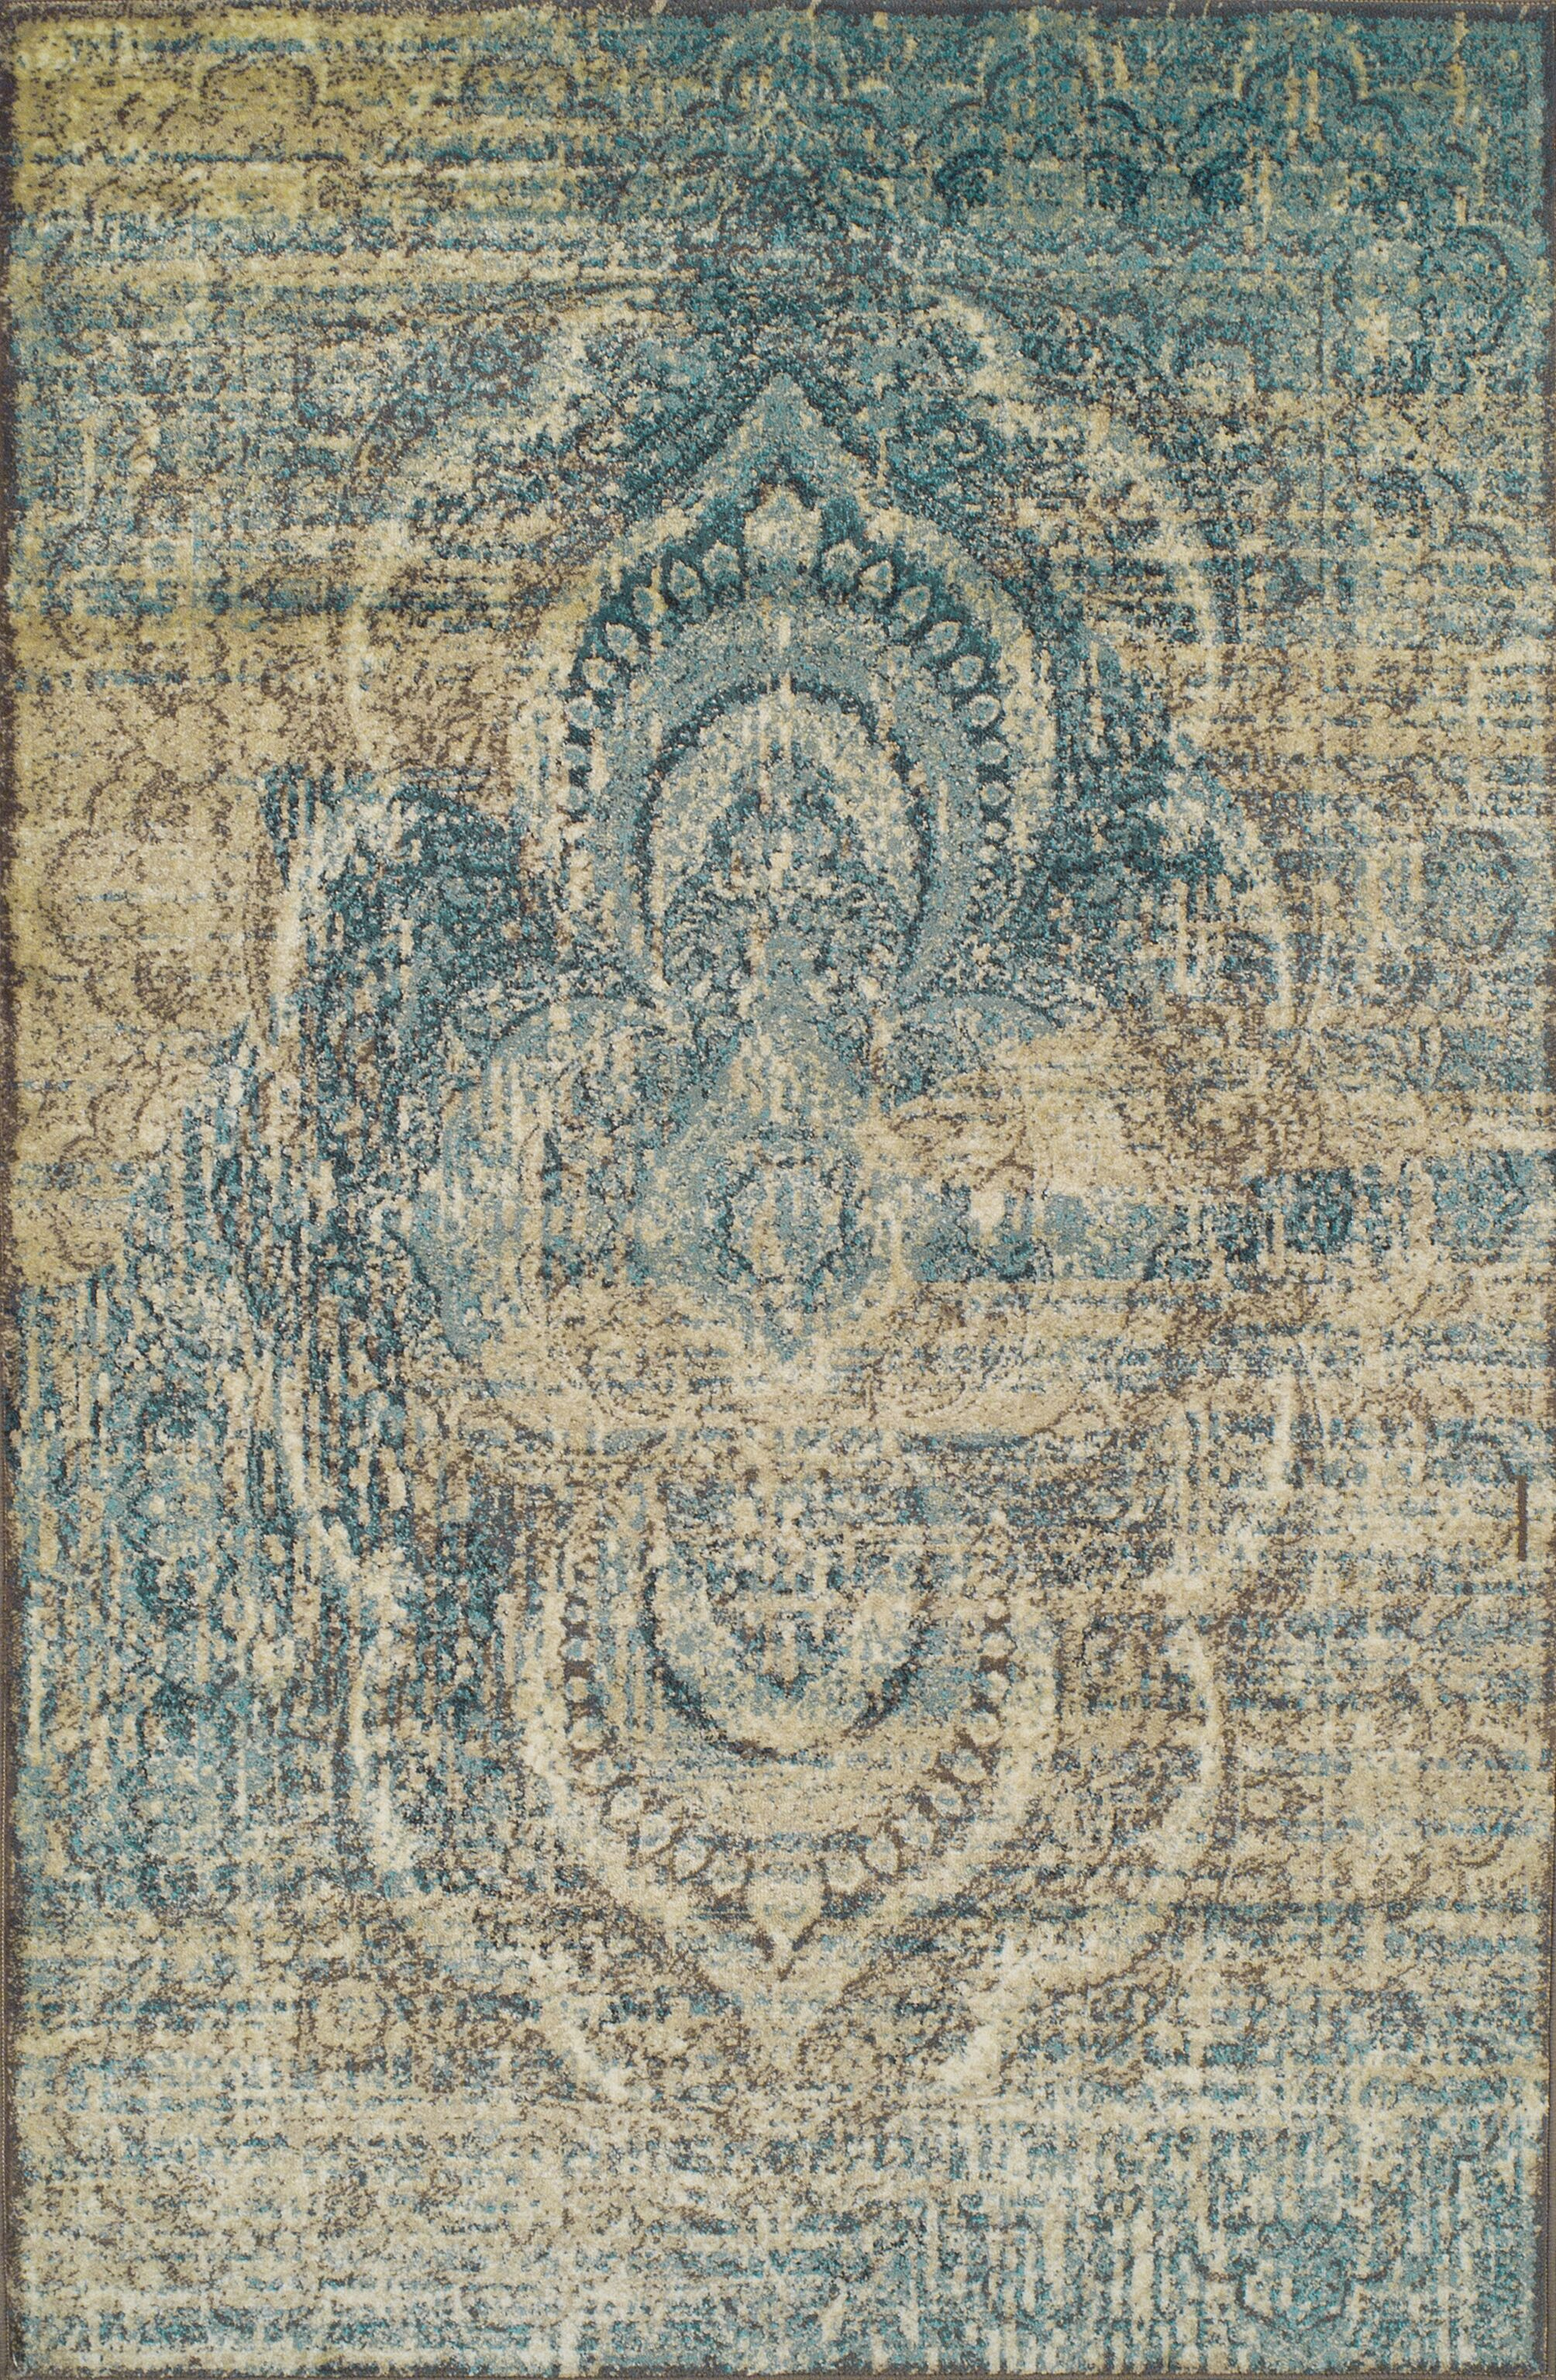 Kaetzel Beige/Blue Area Rug Rug Size: Rectangle 6' x 9'